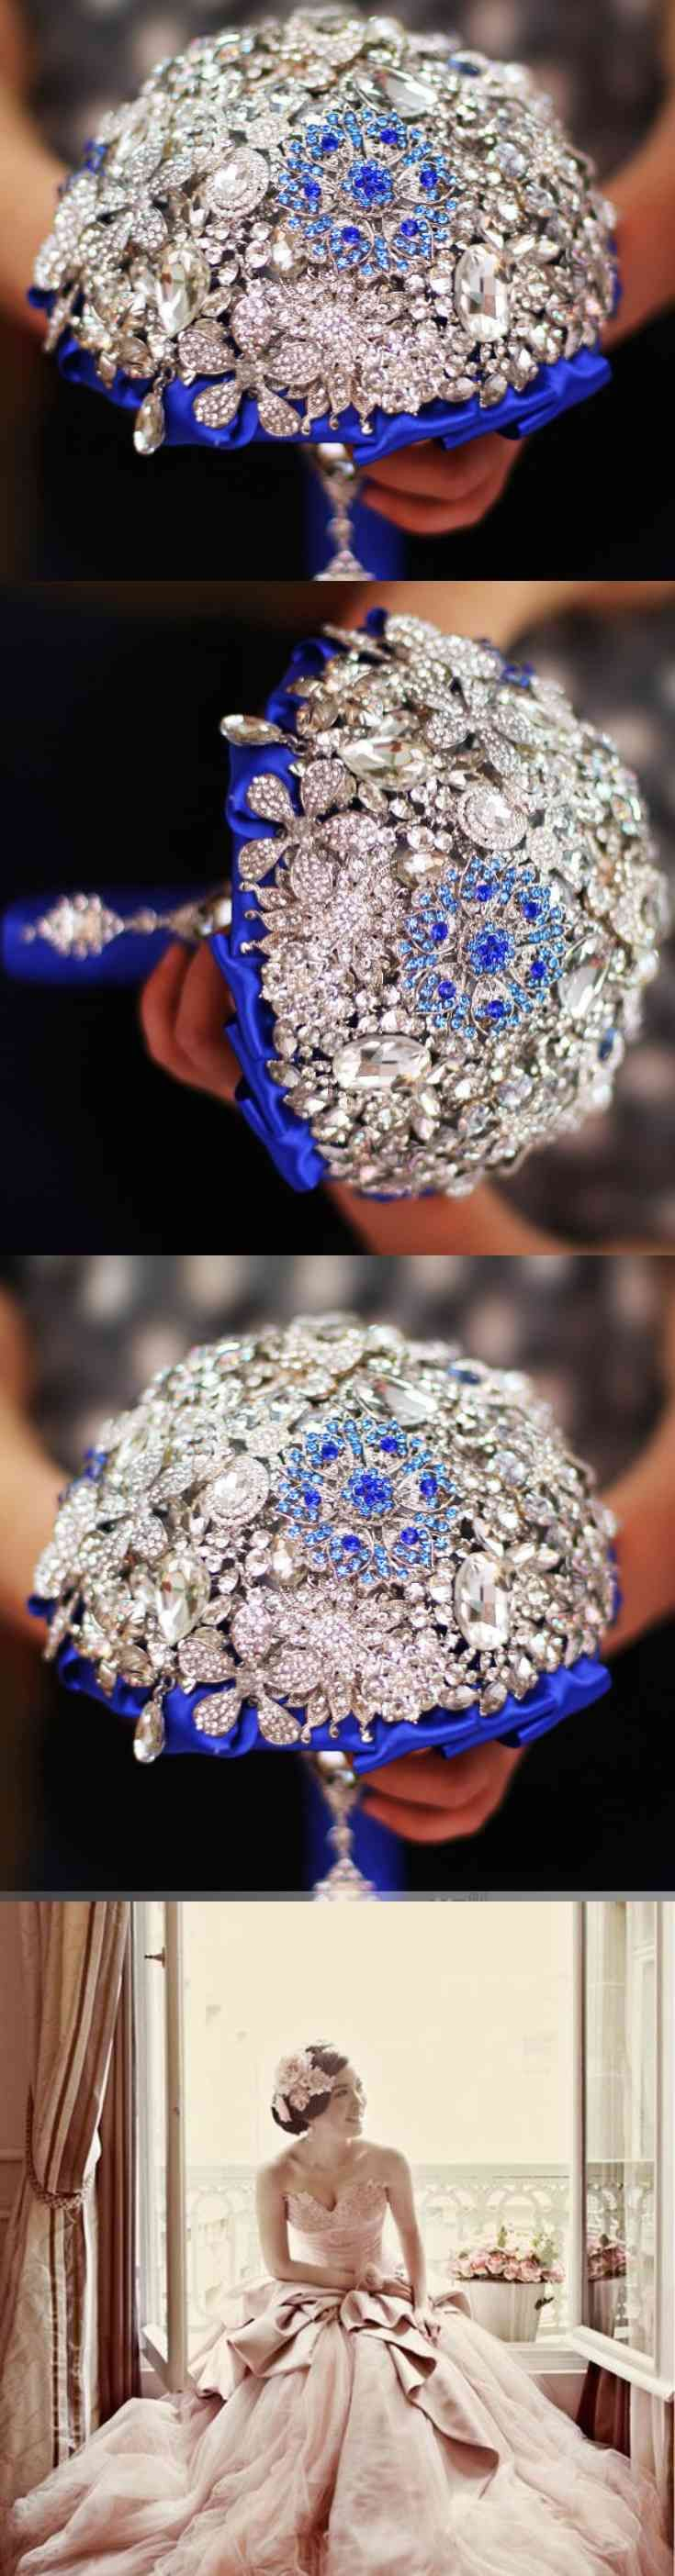 Winter Wedding, Brooch Bouquet, Royal Blue Brooch Bridal Bouquet, Winter bouquet, Jeweled Bouquet, Royal Blue Bouquet.  Royal Blue is a truly for Royal Bride to be. This gorgeous bouquet is a masterpiece and will remind you of your special day for many generations to come a heirloom in making~  11 inches length 8 inches wide  ~ 50% percent deposit required ~ total due (...) (via pushapin.com)